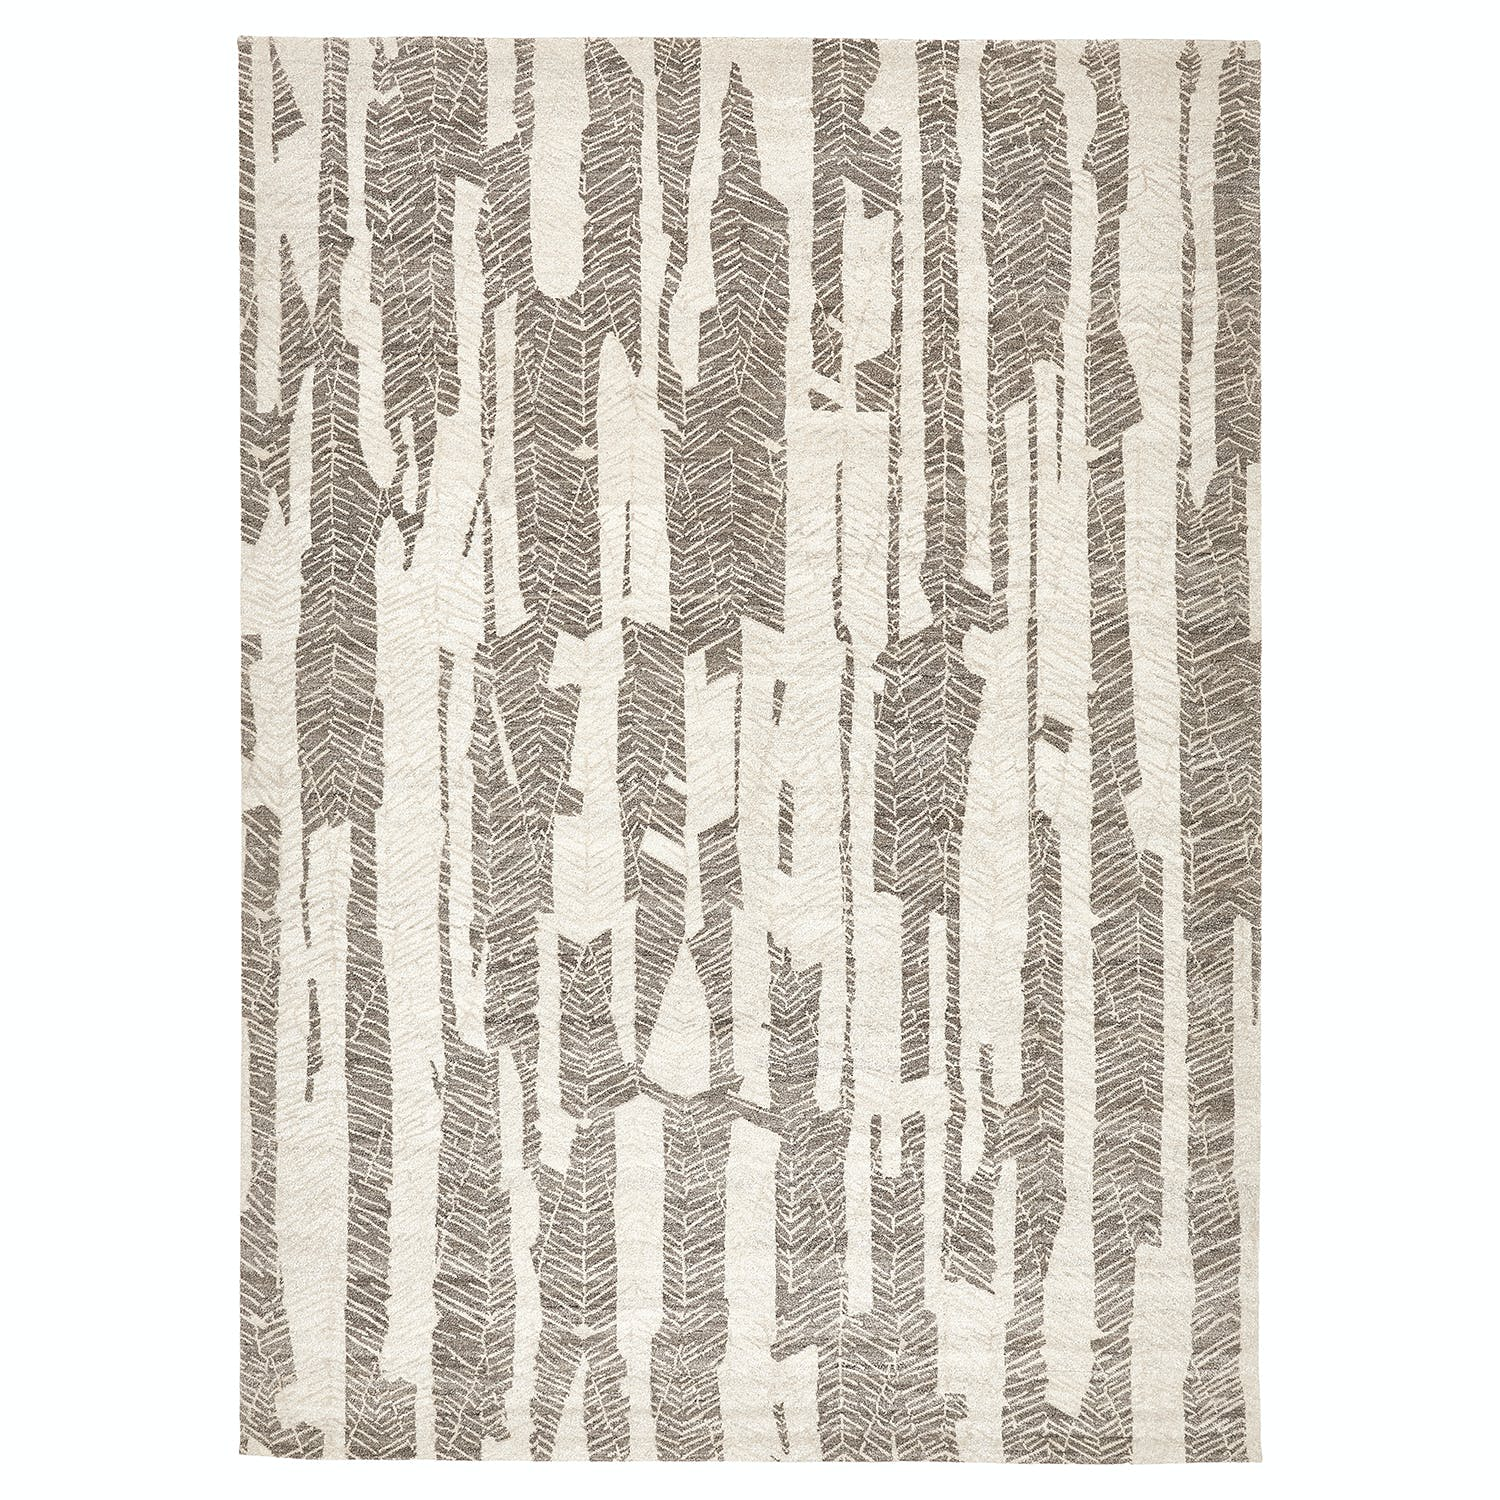 Product Image - Nu Vibrant Rug - 10'x14'2""